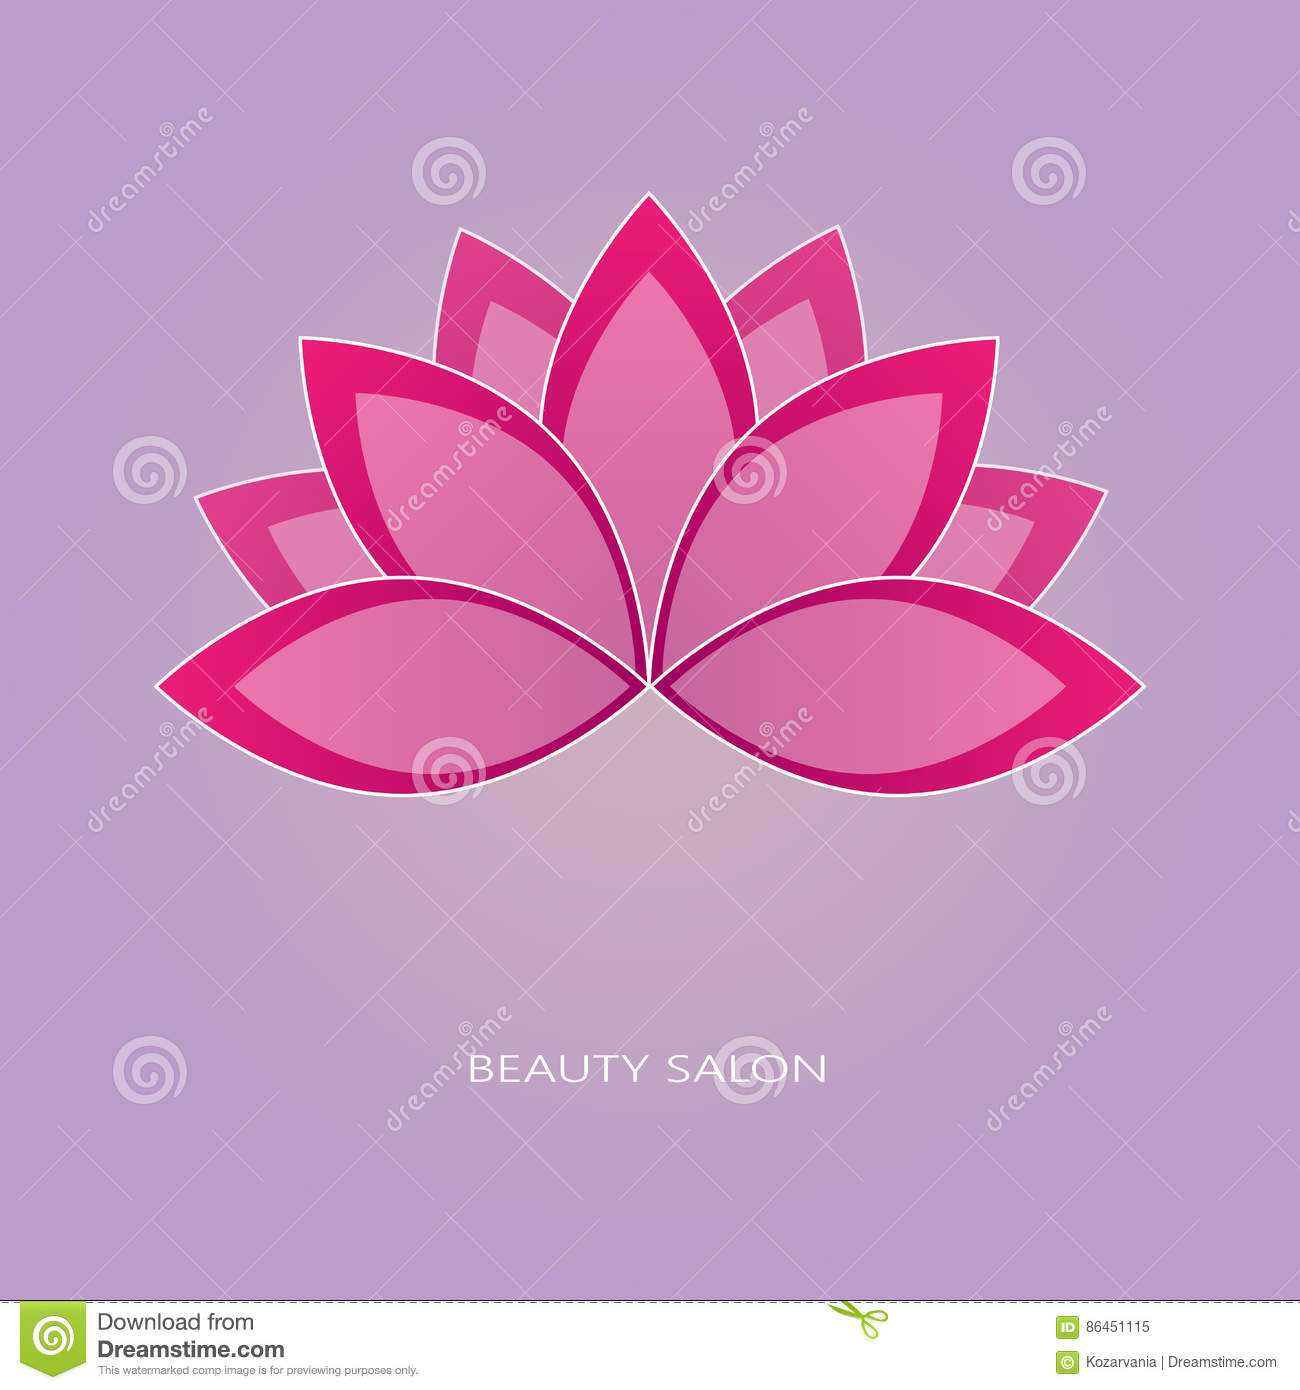 Lotus Flower Emblem Stock Vector Illustration Of Business 86451115